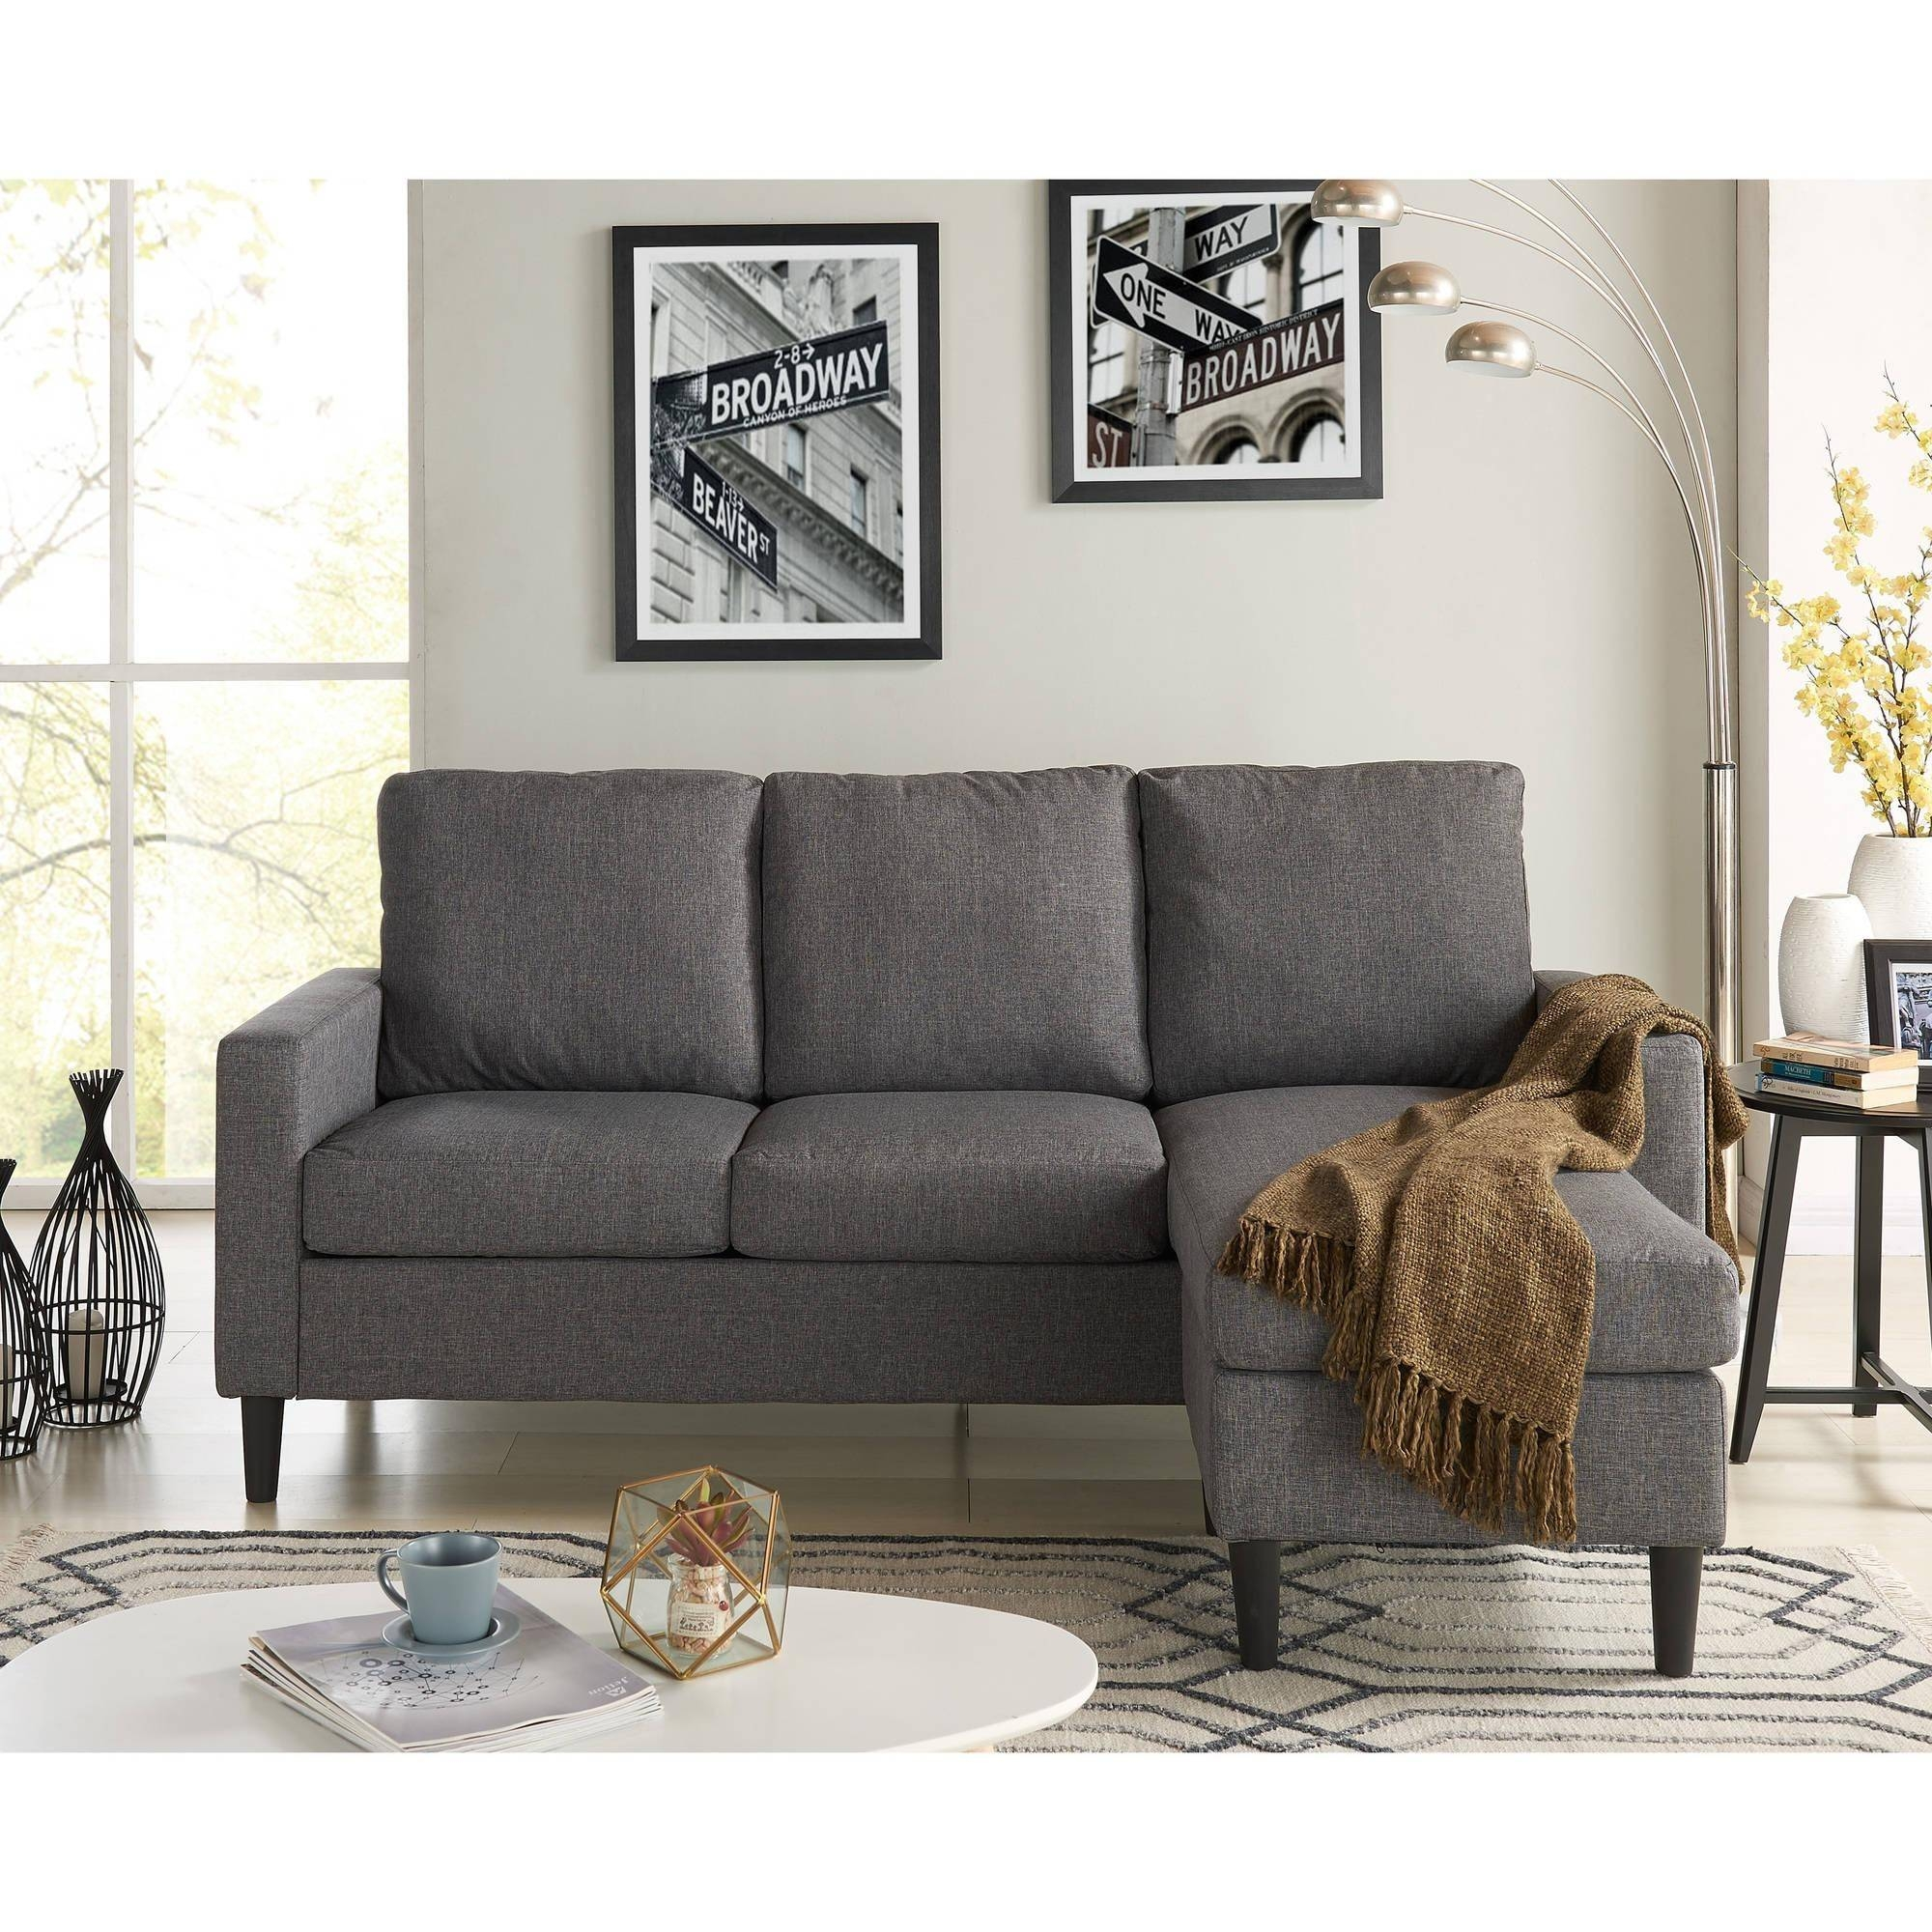 20 Best Mainstay Sofas | Sofa Ideas with Mainstay Sofas (Image 9 of 15)